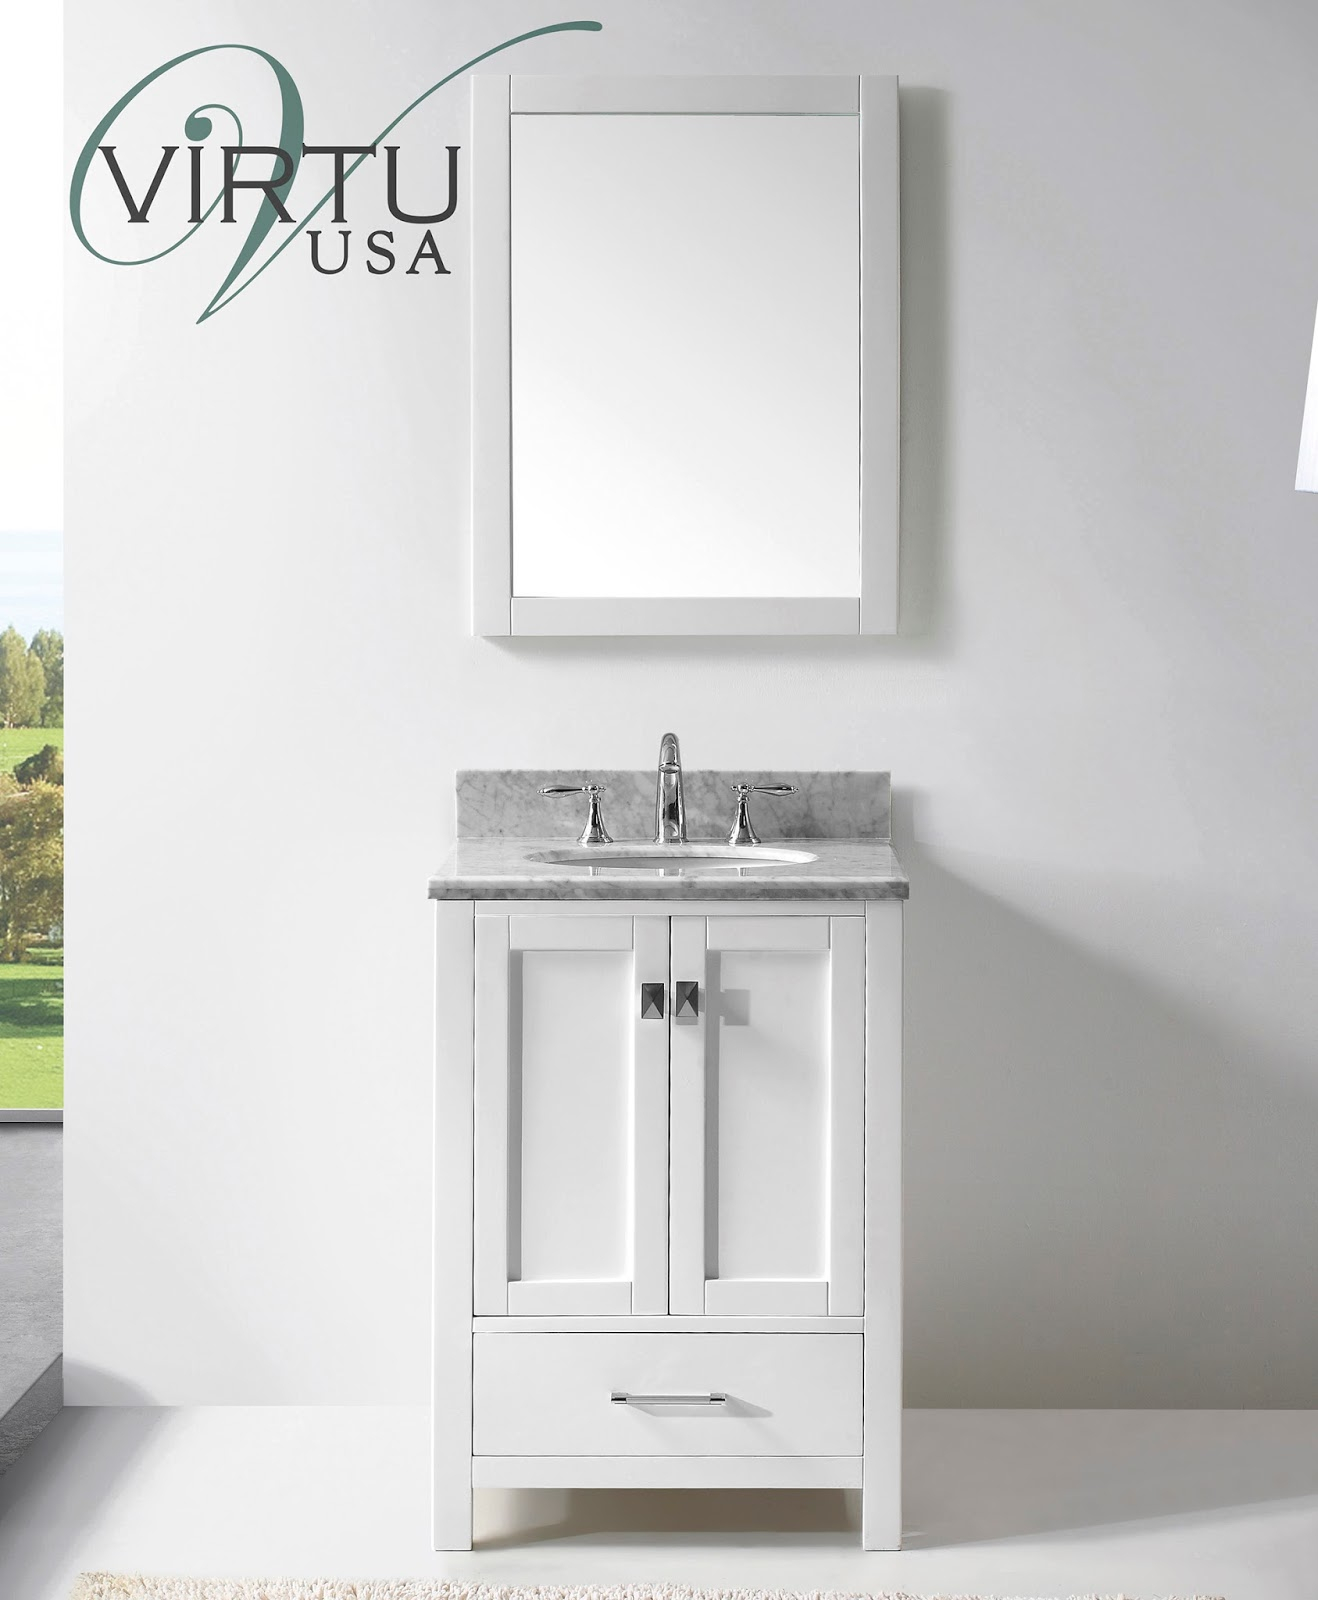 Fancy Tiny Bathroom Vanity - 4K Wallpapers Design throughout Beautiful Small Bathroom Sinks And Vanities